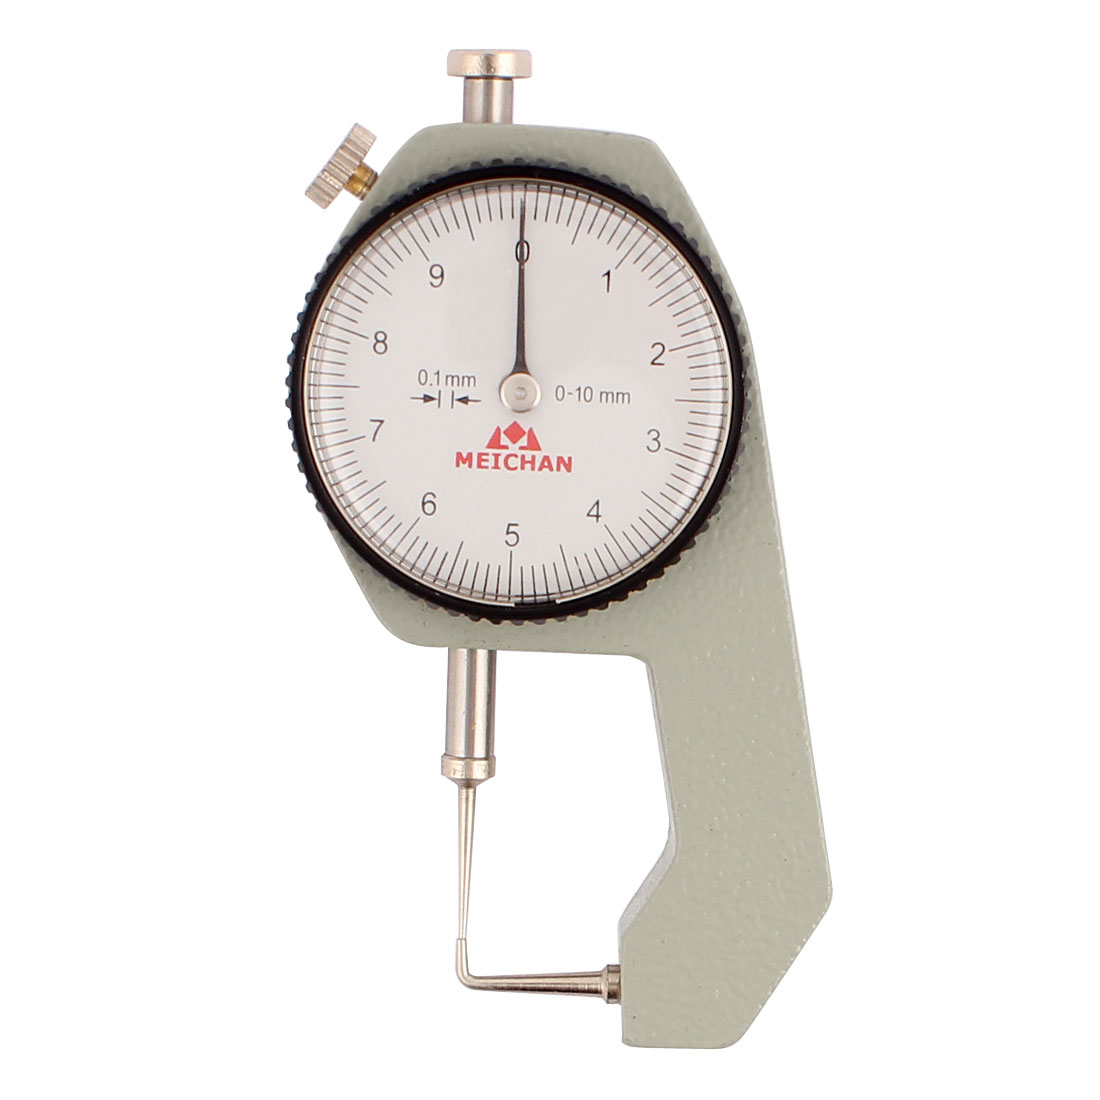 0 to 10mm Measuring Range 0.1mm Grad Round Dial Thickness Gauge C-07